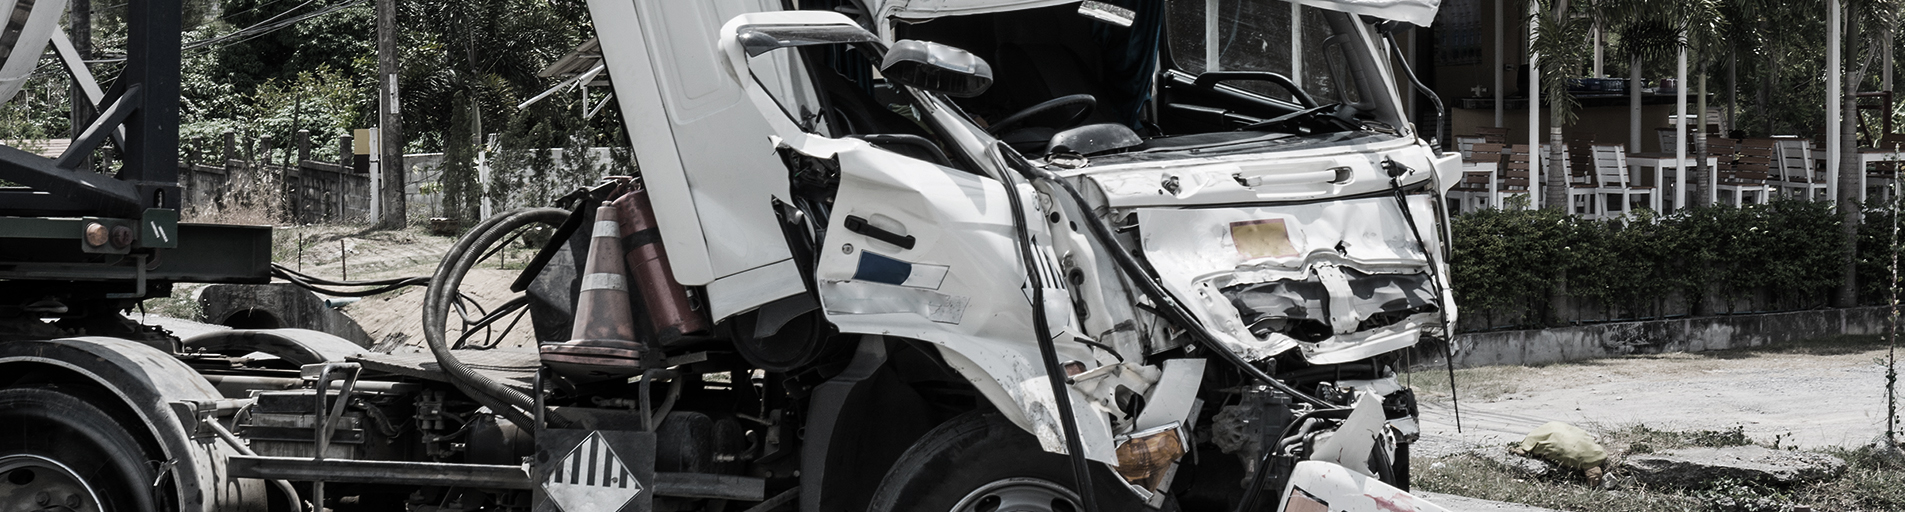 Boca Raton Truck Accident Lawyer